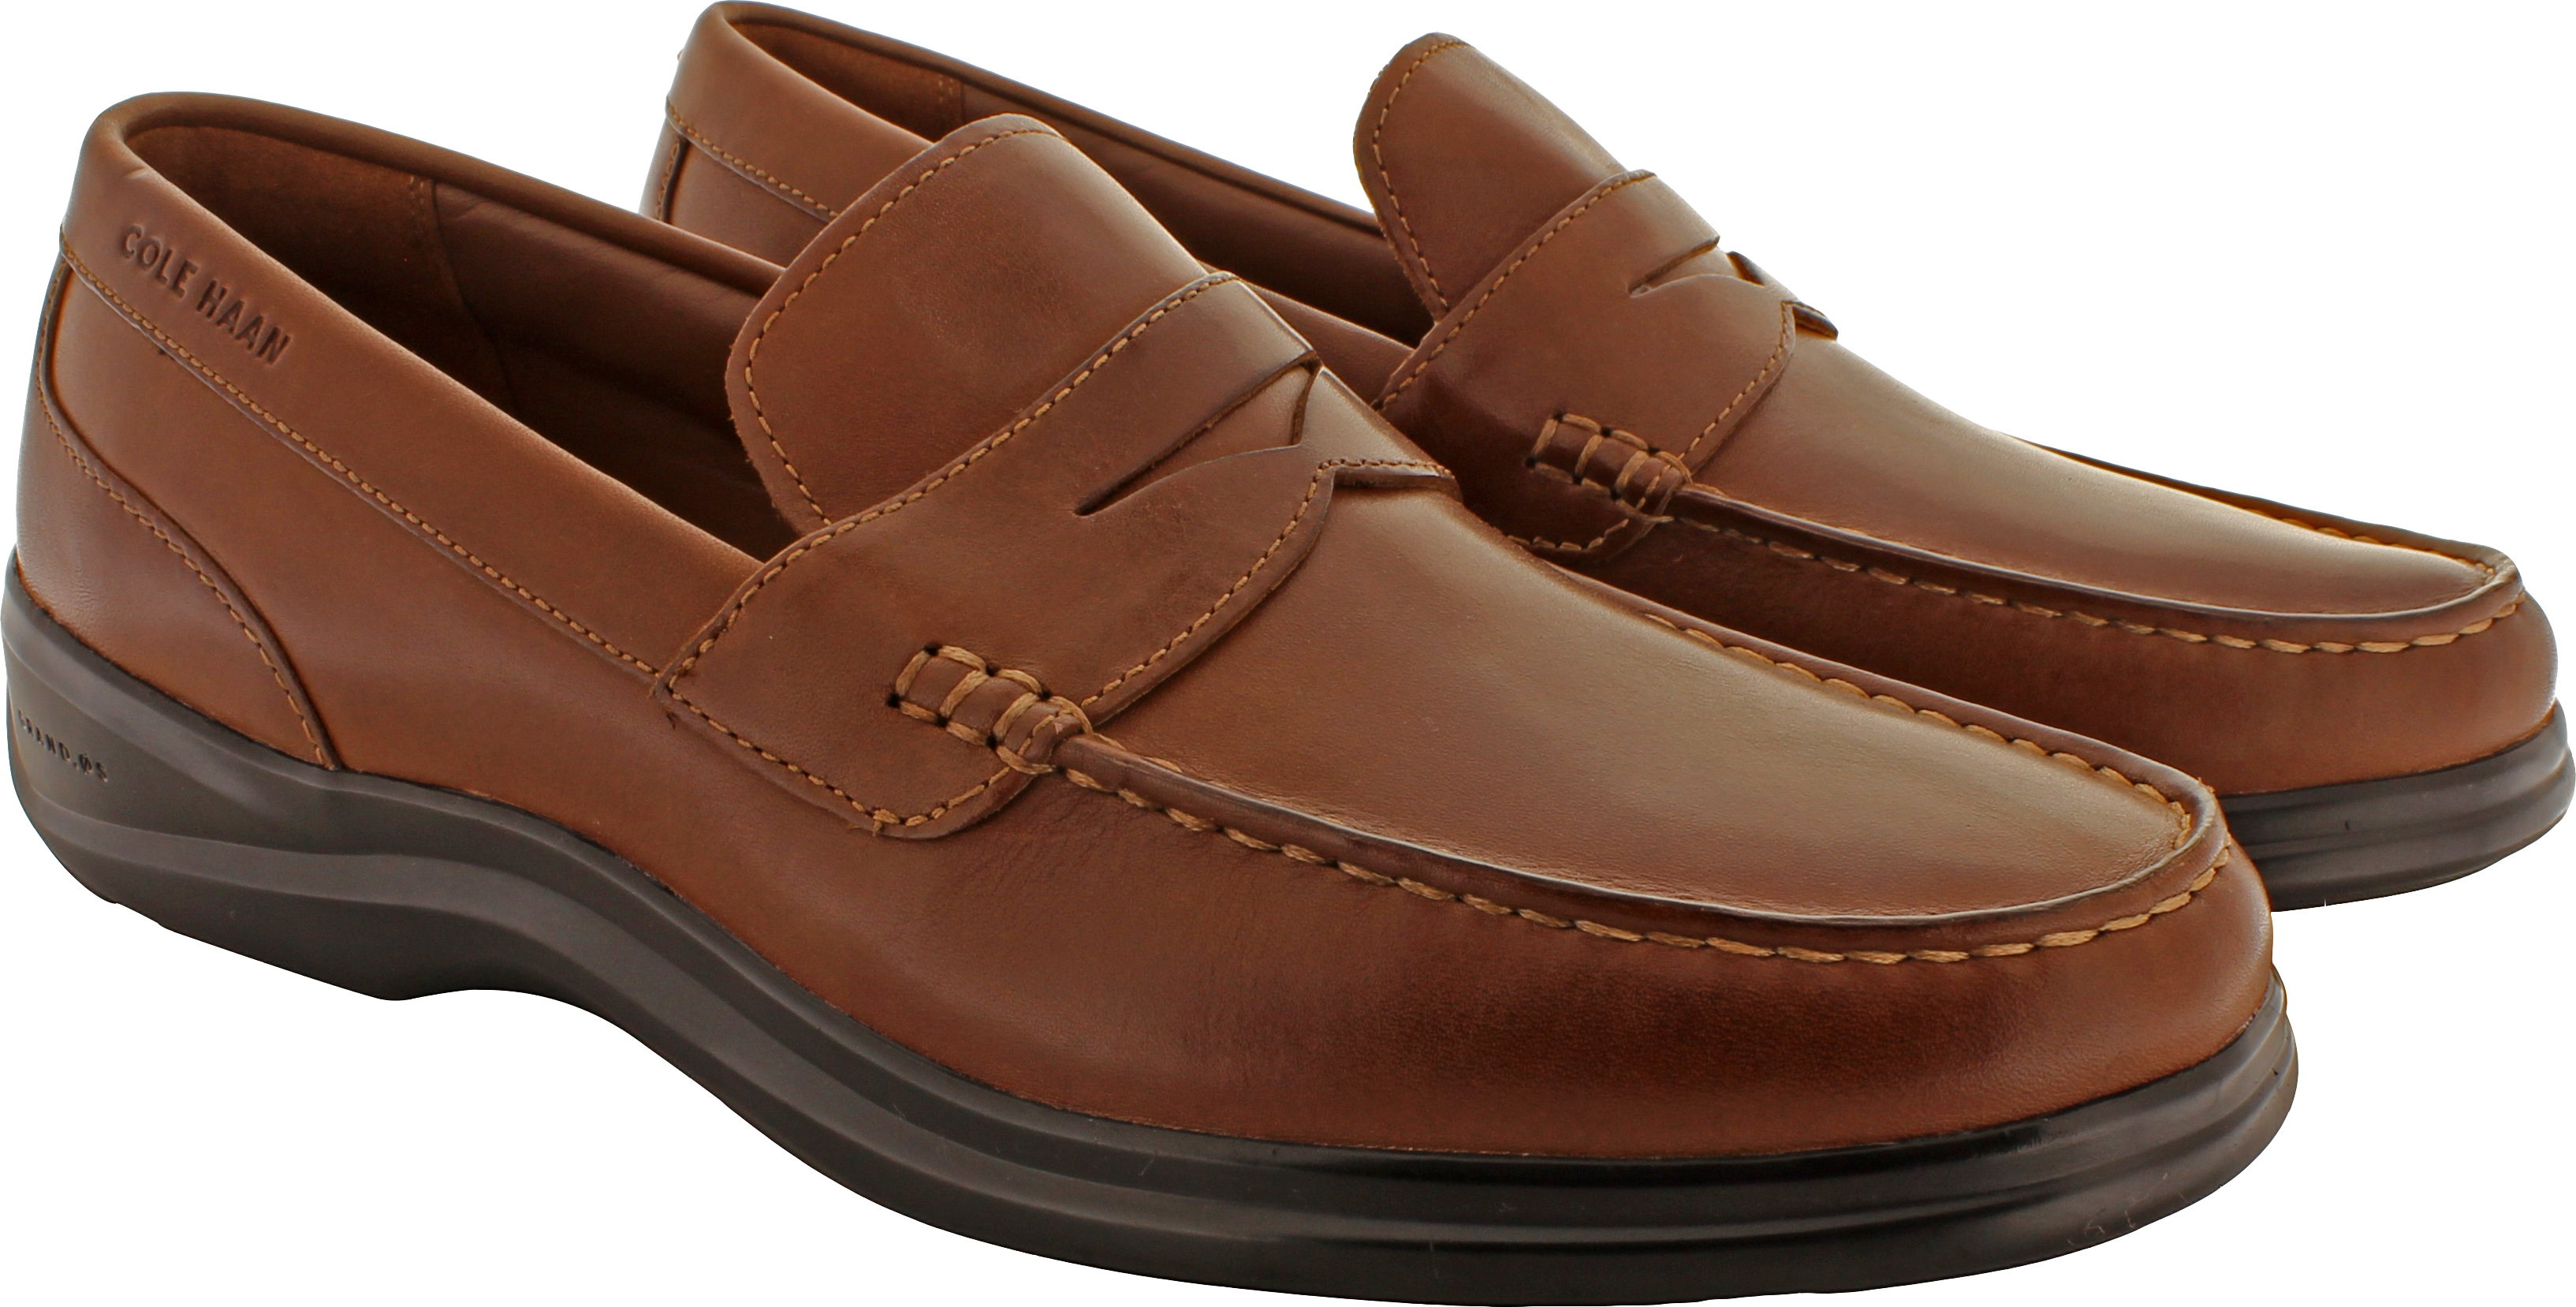 54d5c776716 ... Penny Loafers · Cole Haan Men s C25478 - Santa Barbara Penny Ii ·  https   www.theshoemart.com product images images COL